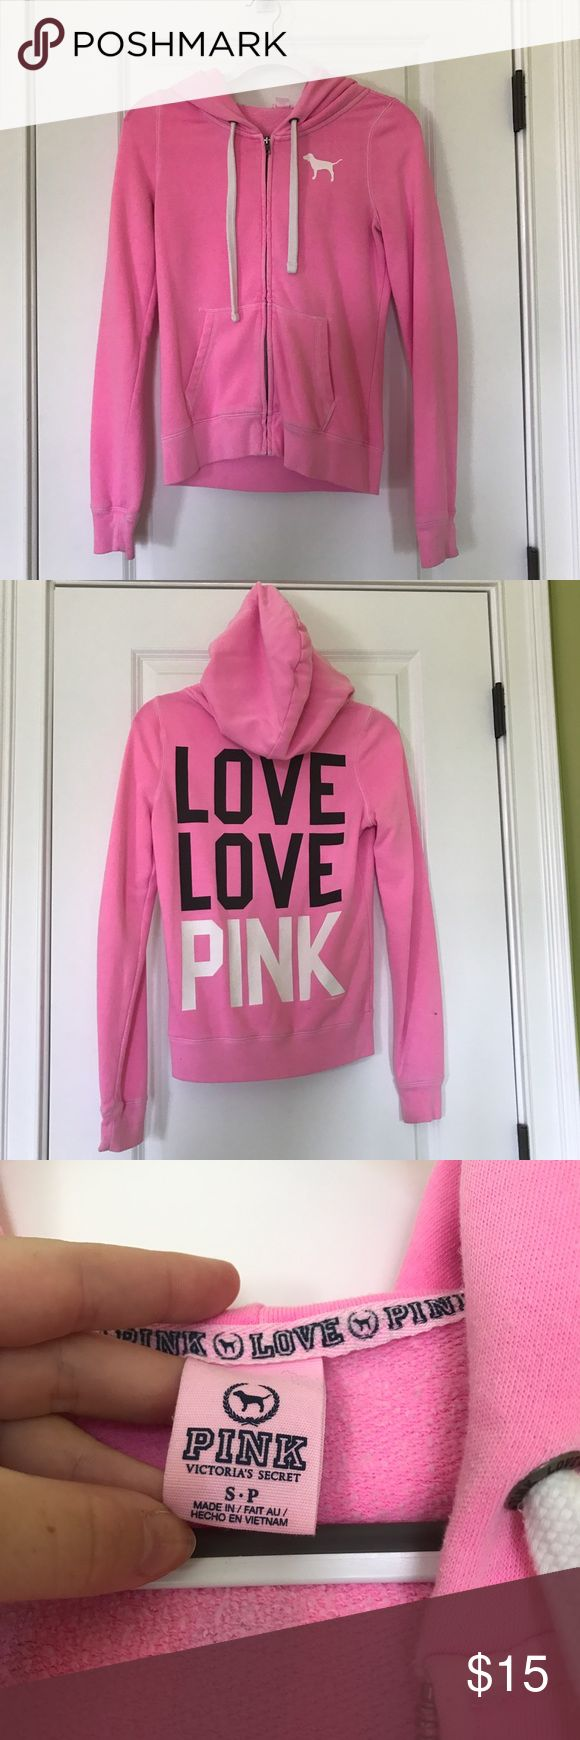 Victoria Secret PINK Zip Up Sweatshirt Victoria Secret PINK Zip Up Sweatshirt. Adorable jacket from VS! Perfect for some warmth and style. Selling because it does not fit me anymore. From a pet hair & smoke free home. PINK Victoria's Secret Jackets & Coats